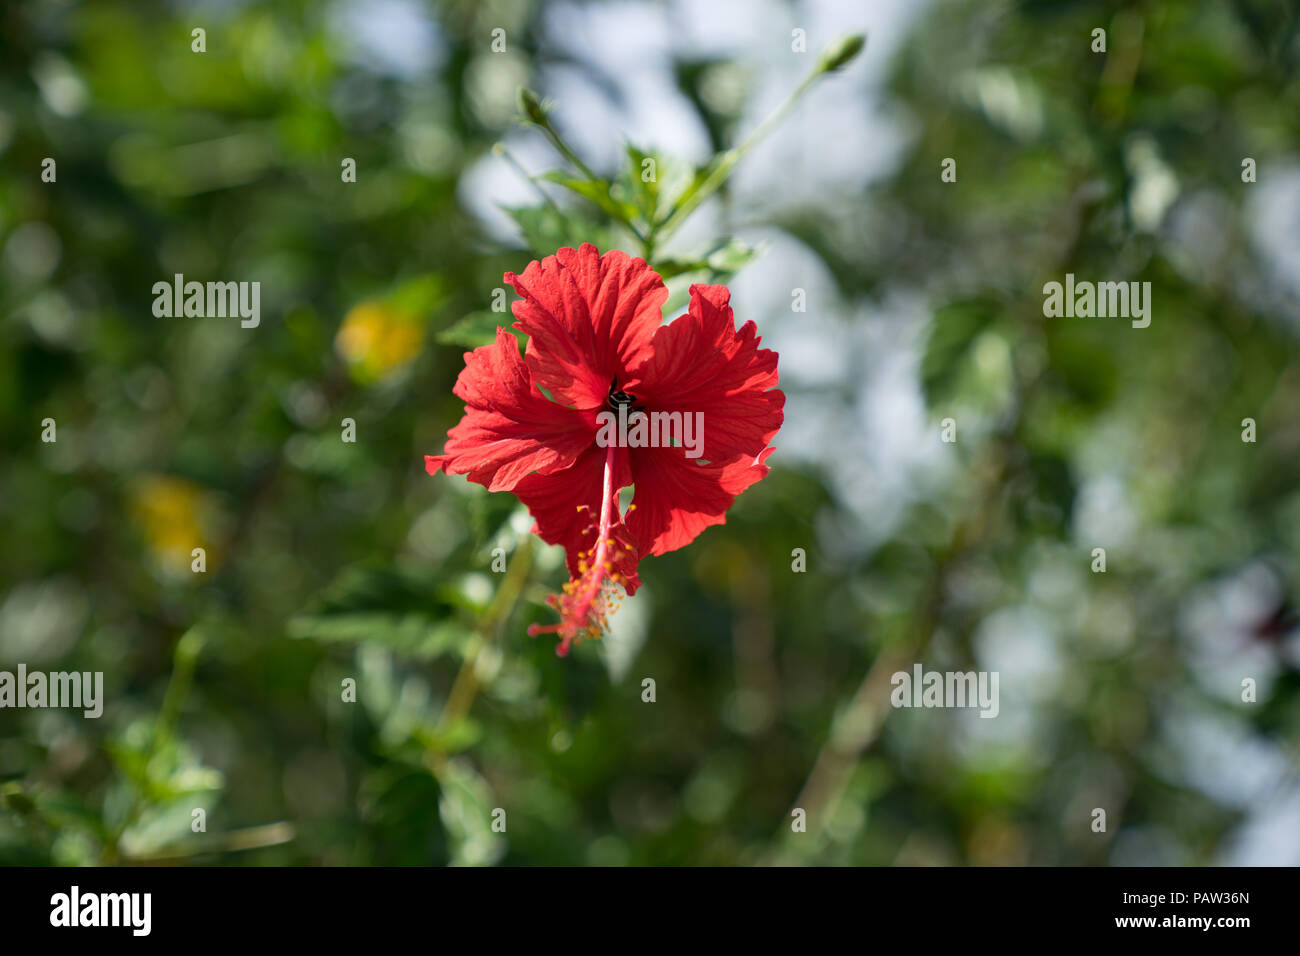 Close up view of red hibiscus flower or shoe flower on green leaves close up view of red hibiscus flower or shoe flower on green leaves bokeh background tropical garden izmirmasajfo